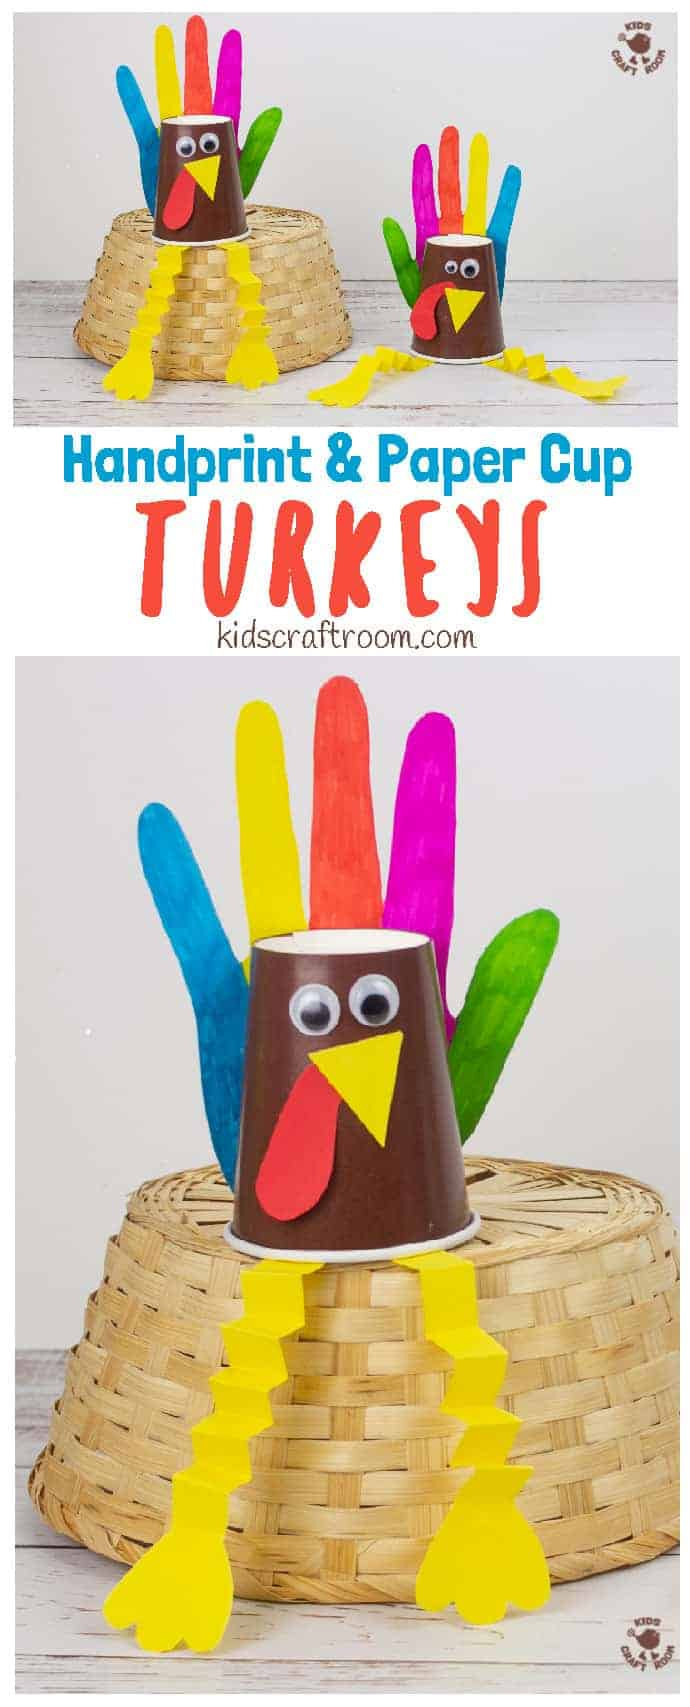 Handprint and Paper Cup Turkey Craft pin 1